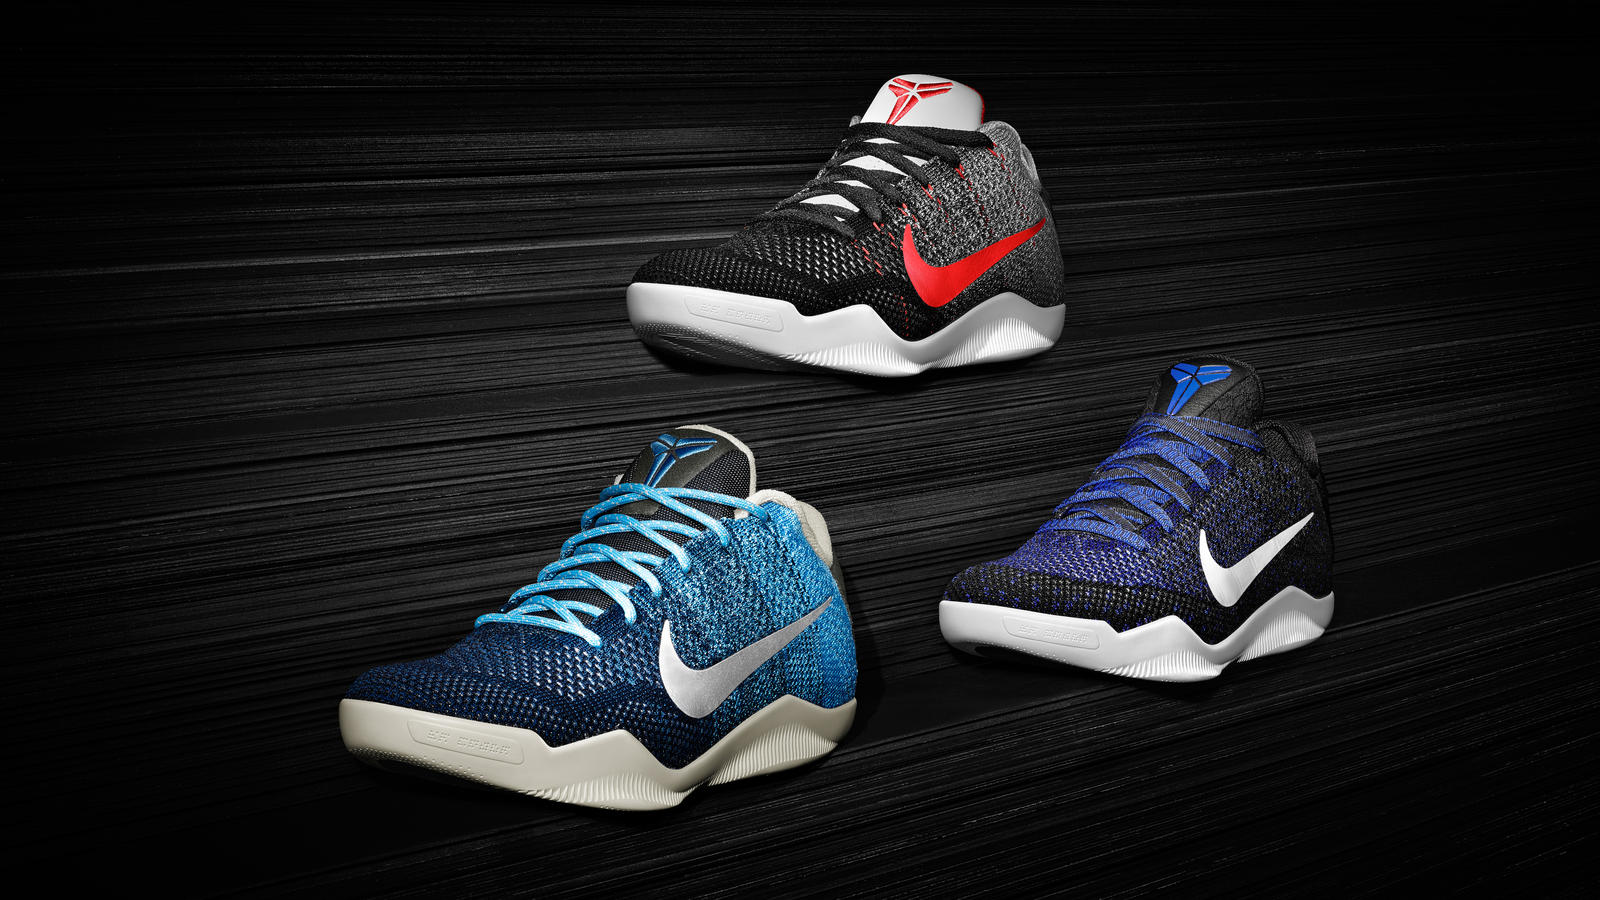 KOBE 11 Muse Pack  A New Chapter Begins - Nike News 8e48f632fb